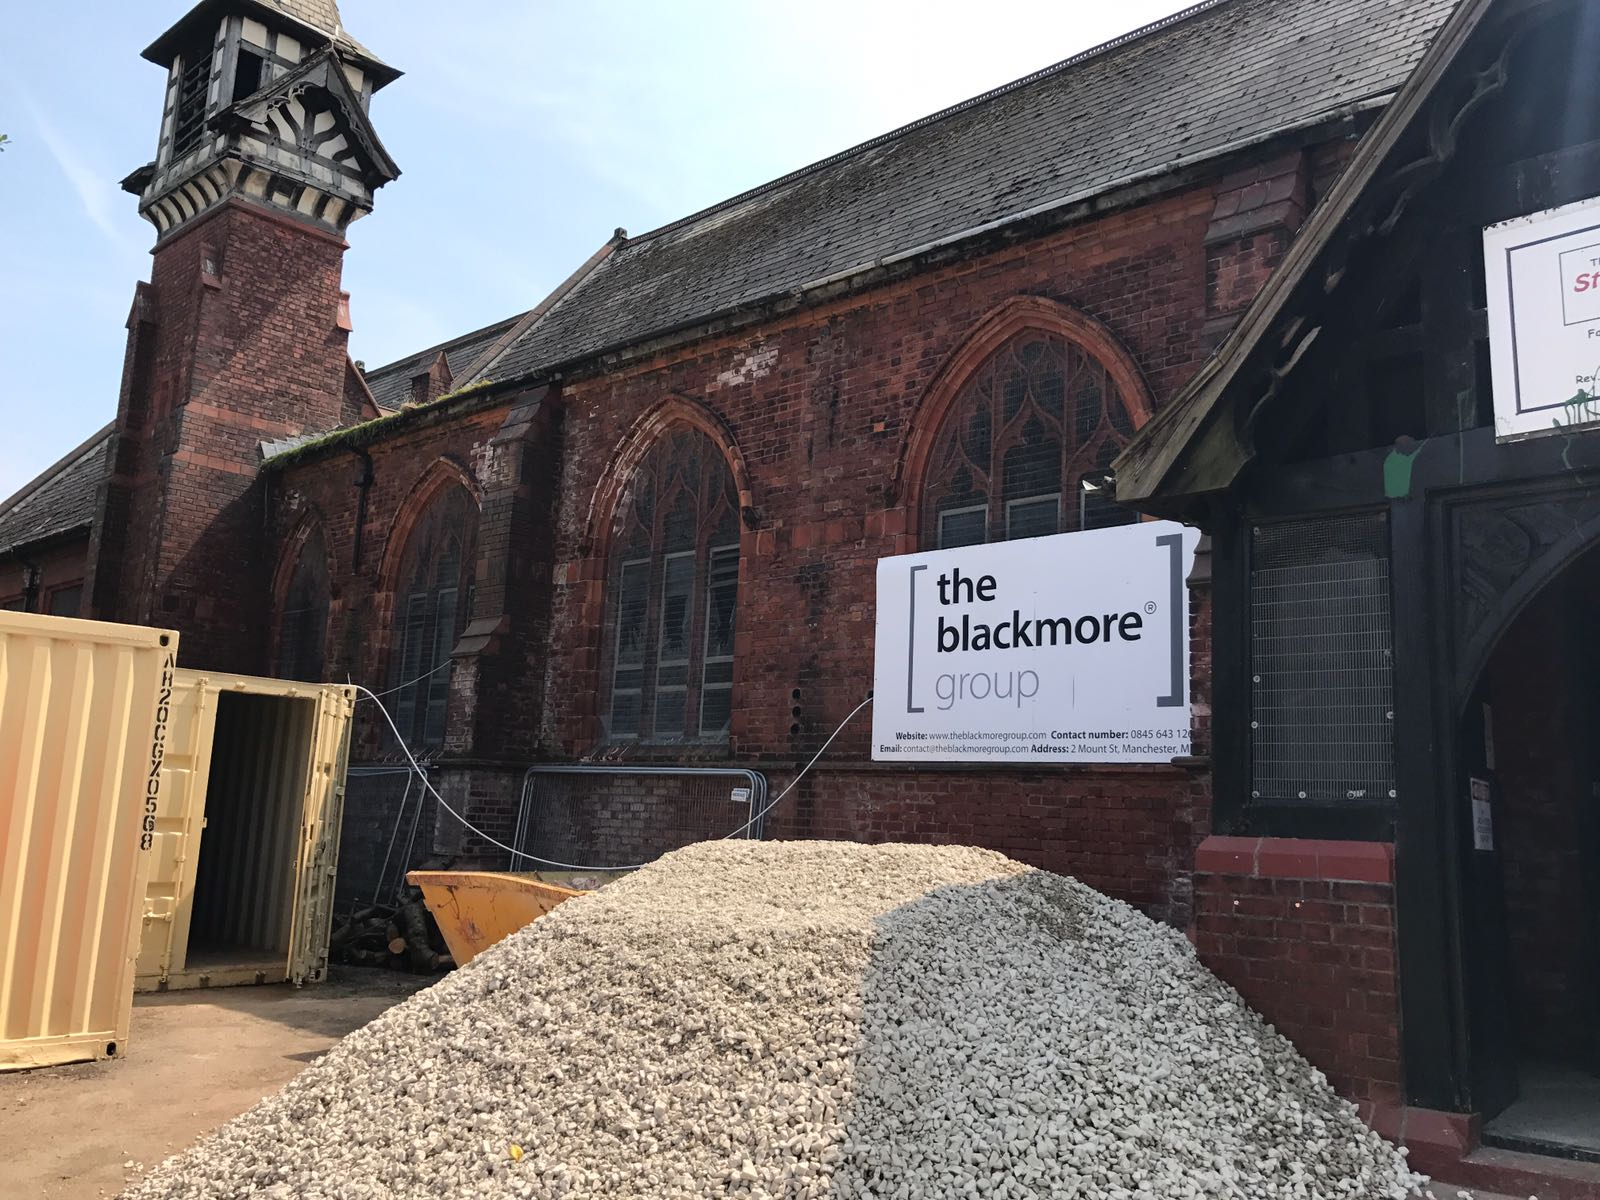 Blackmore Group hoardings go up around the St Augustines Site in Cheadle